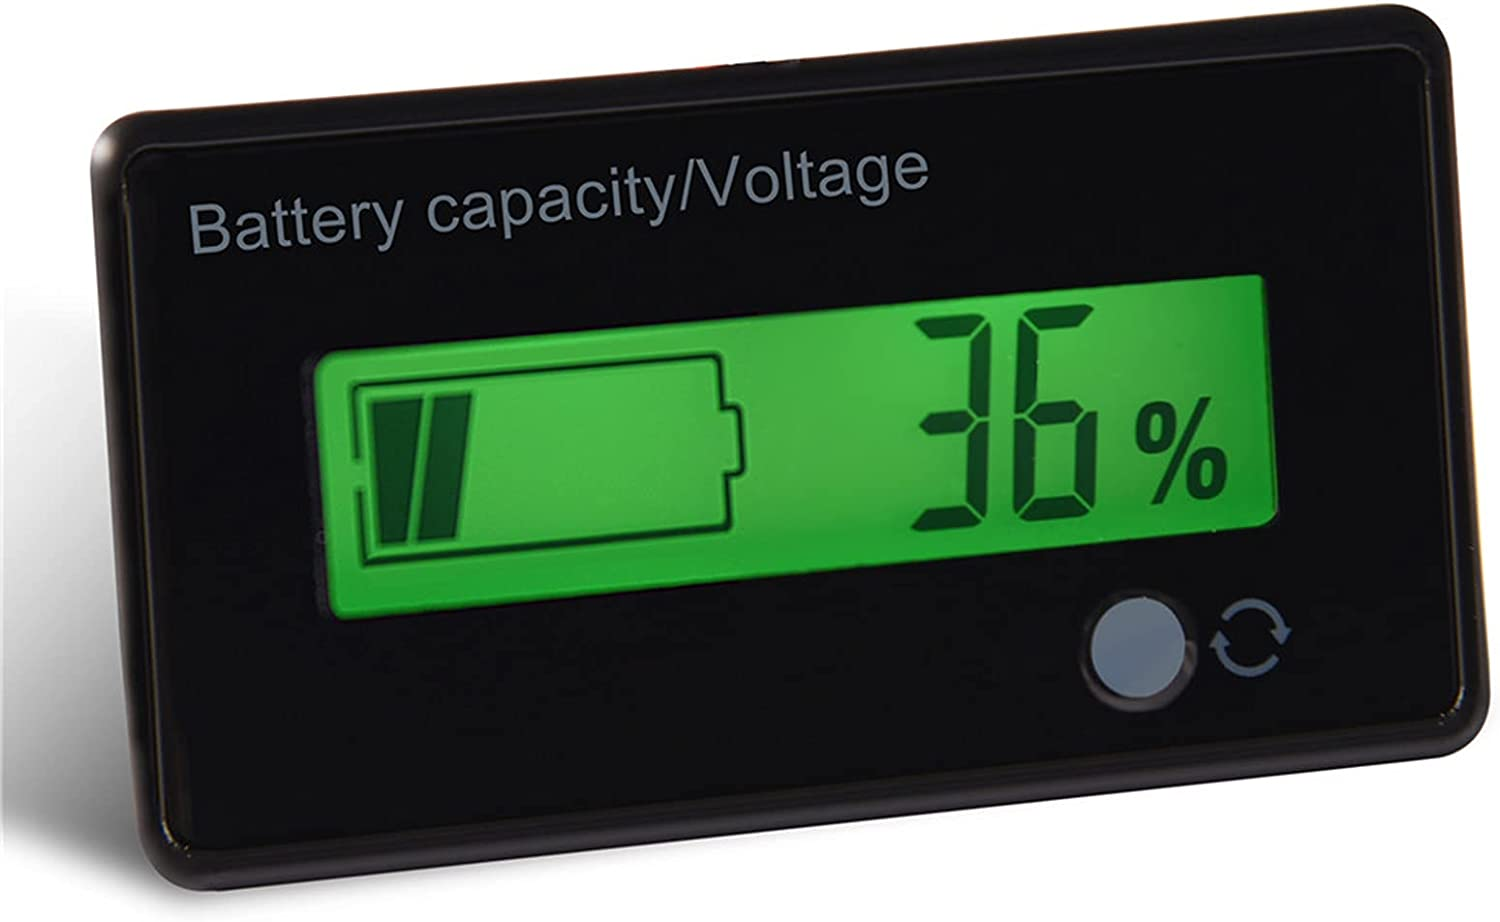 Wosune Voltage Meter, Waterproof Battery Tester LCD Screen Practical for Power Supply for Battery Pack for EPS for UPS